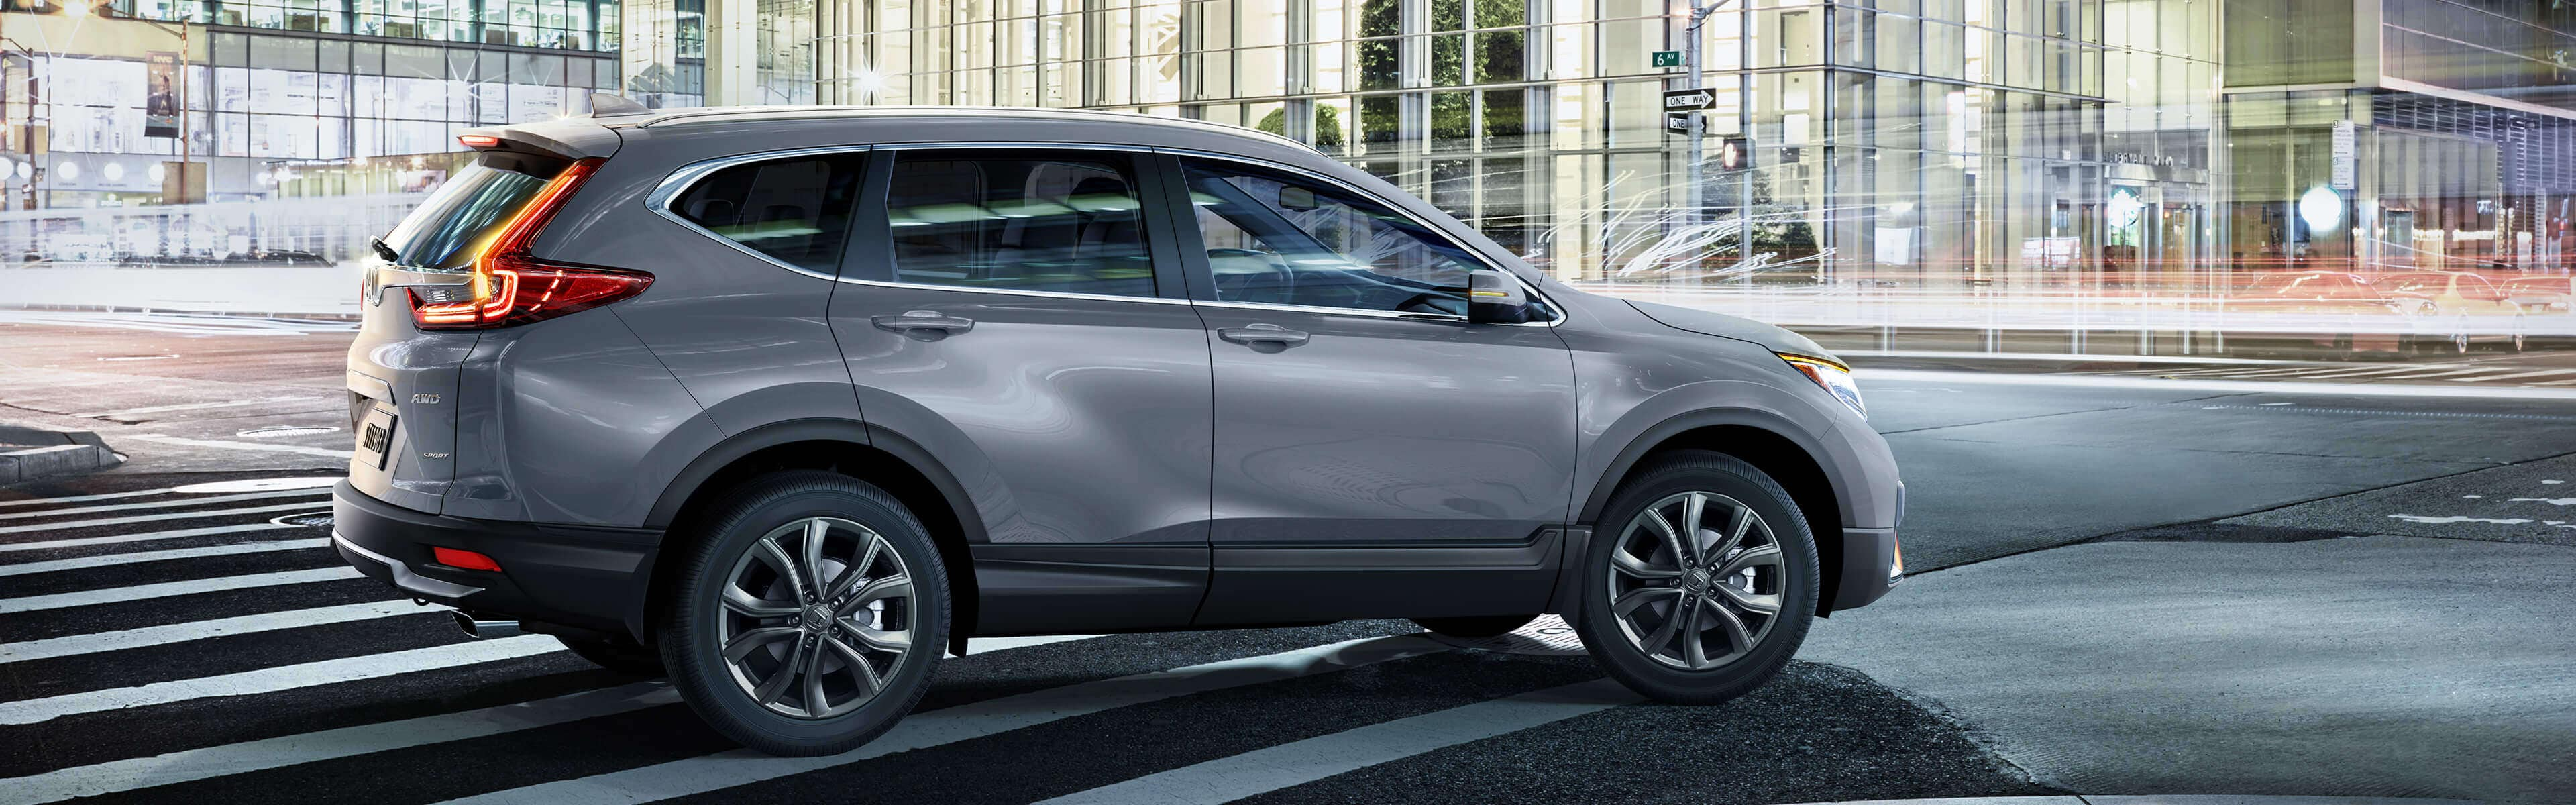 2020 Honda CRV Exterior at Richmond Hill Honda in Toronto and the GTA